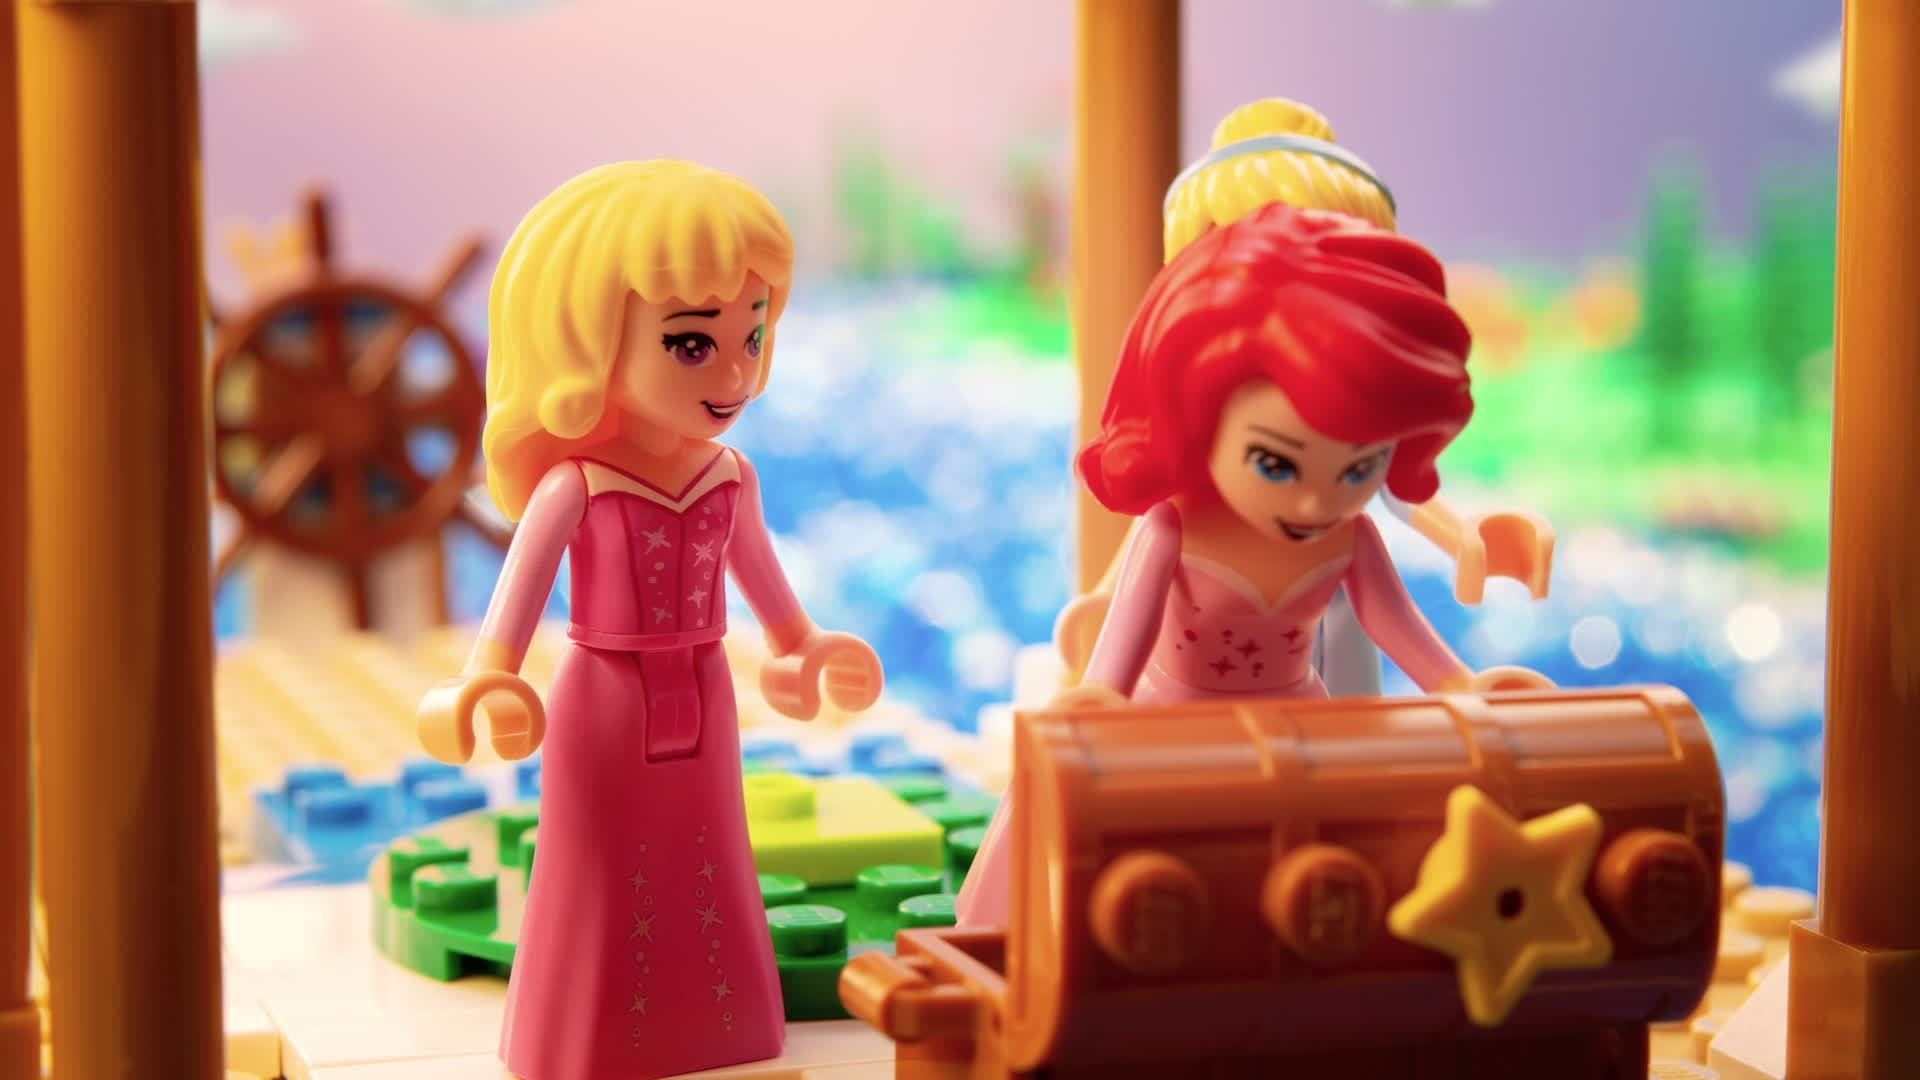 LEGO Disney Princess – Share Your Story | As Told By LEGO by Disney